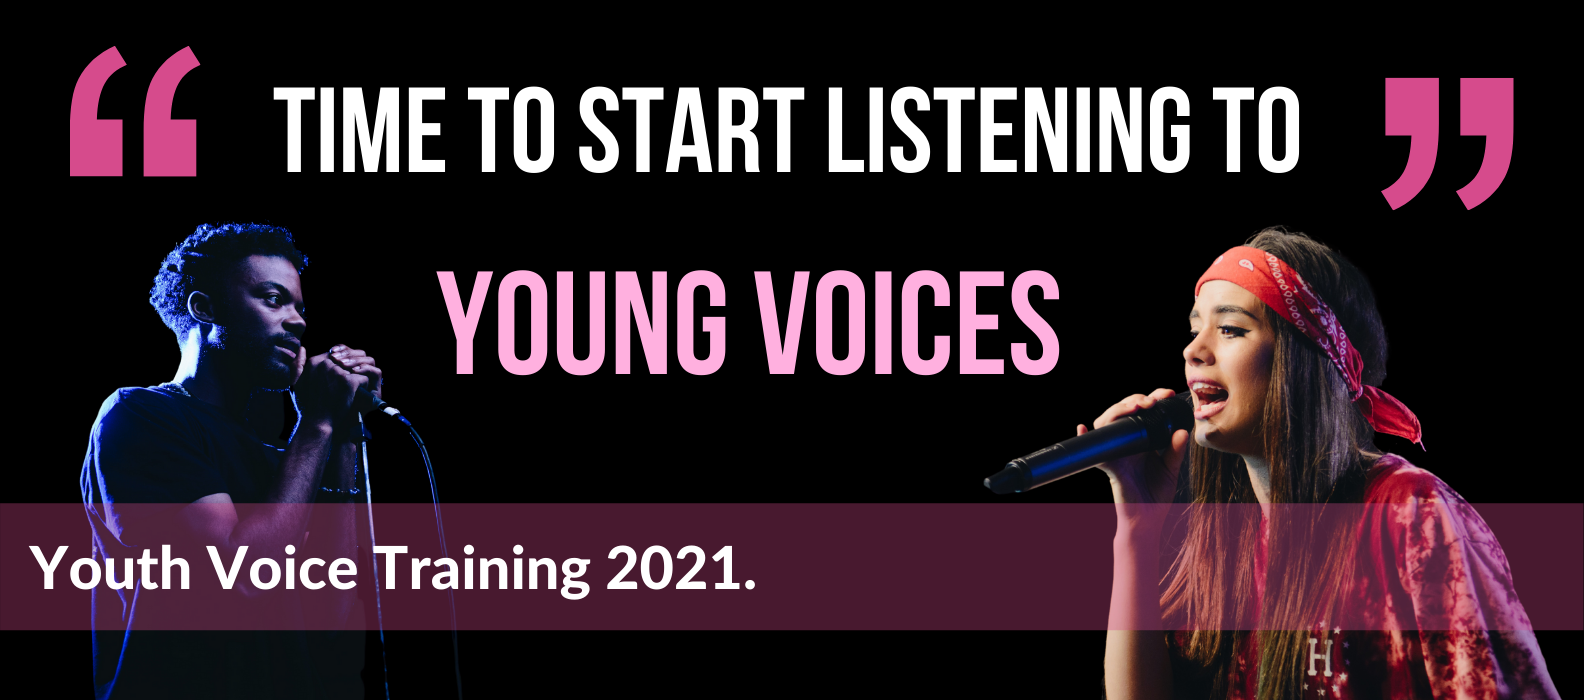 Youth Voice Training May 2021